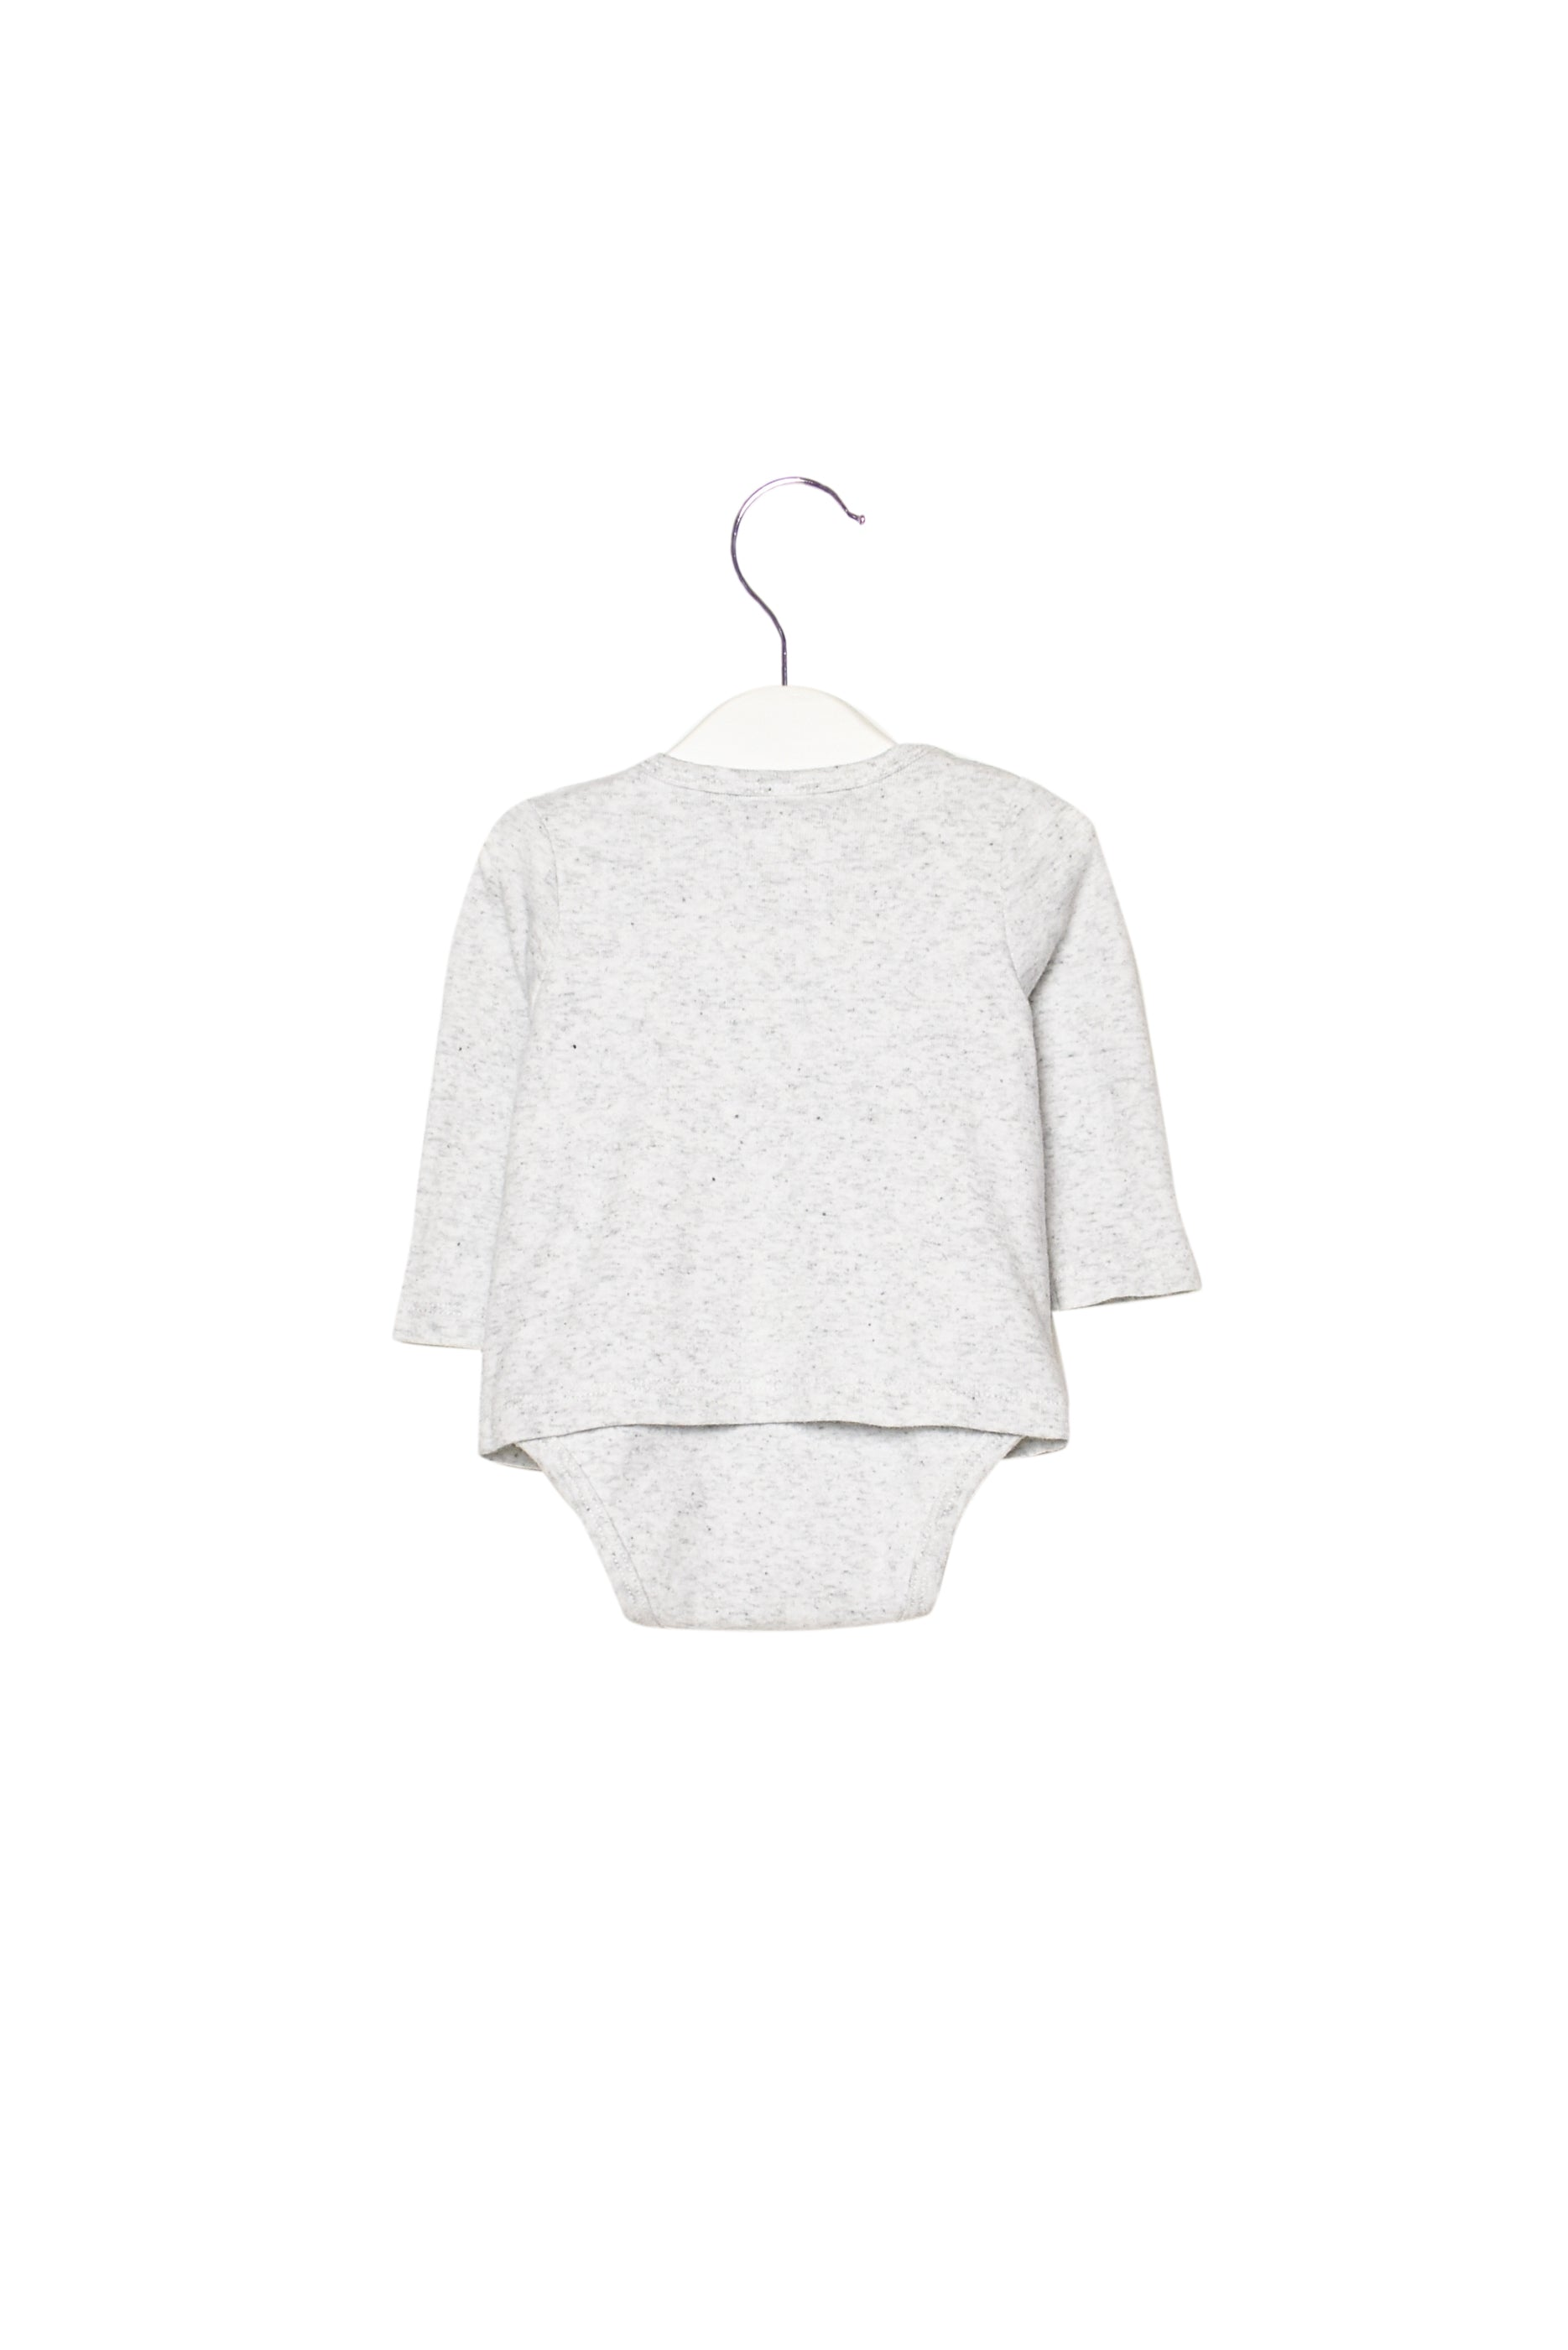 10011997 Seed Baby ~ Bodysuit 0-3M at Retykle